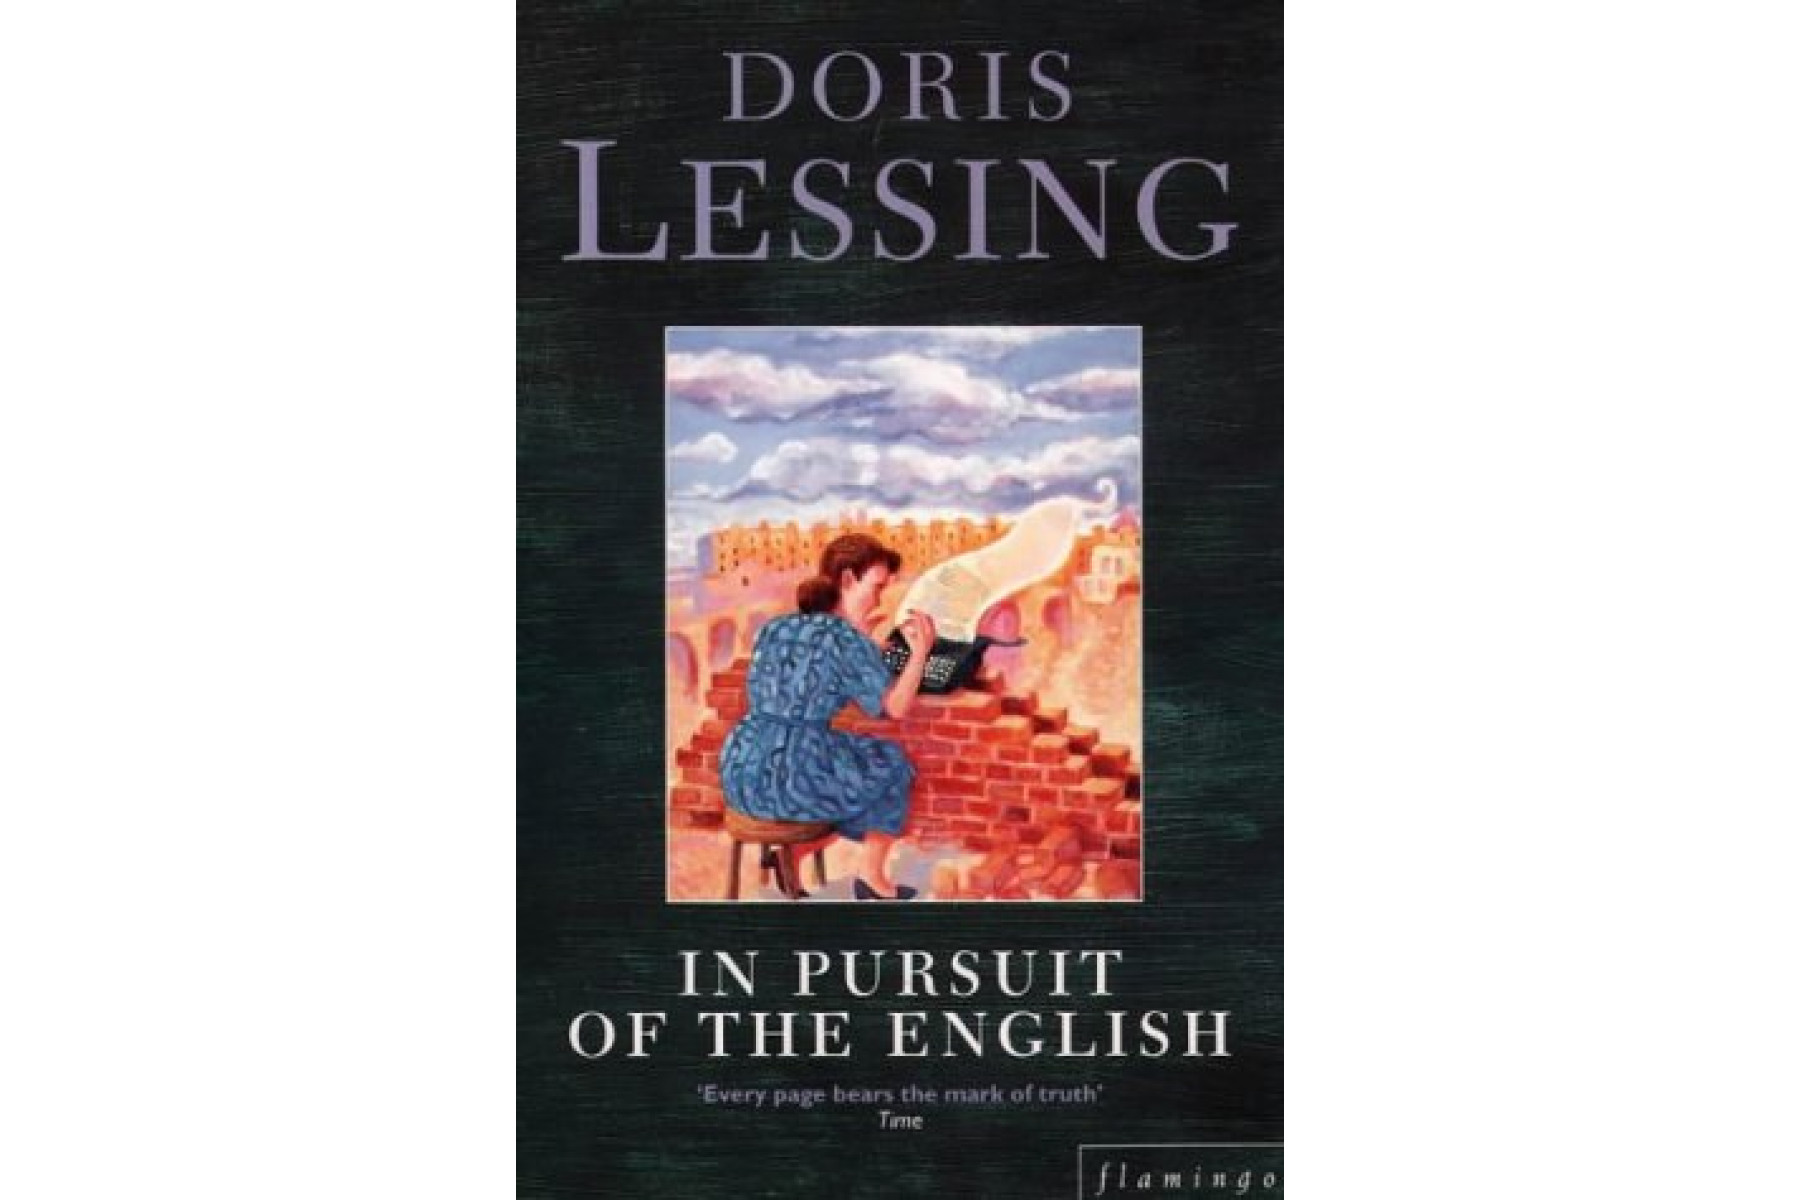 In Pursuit of the English